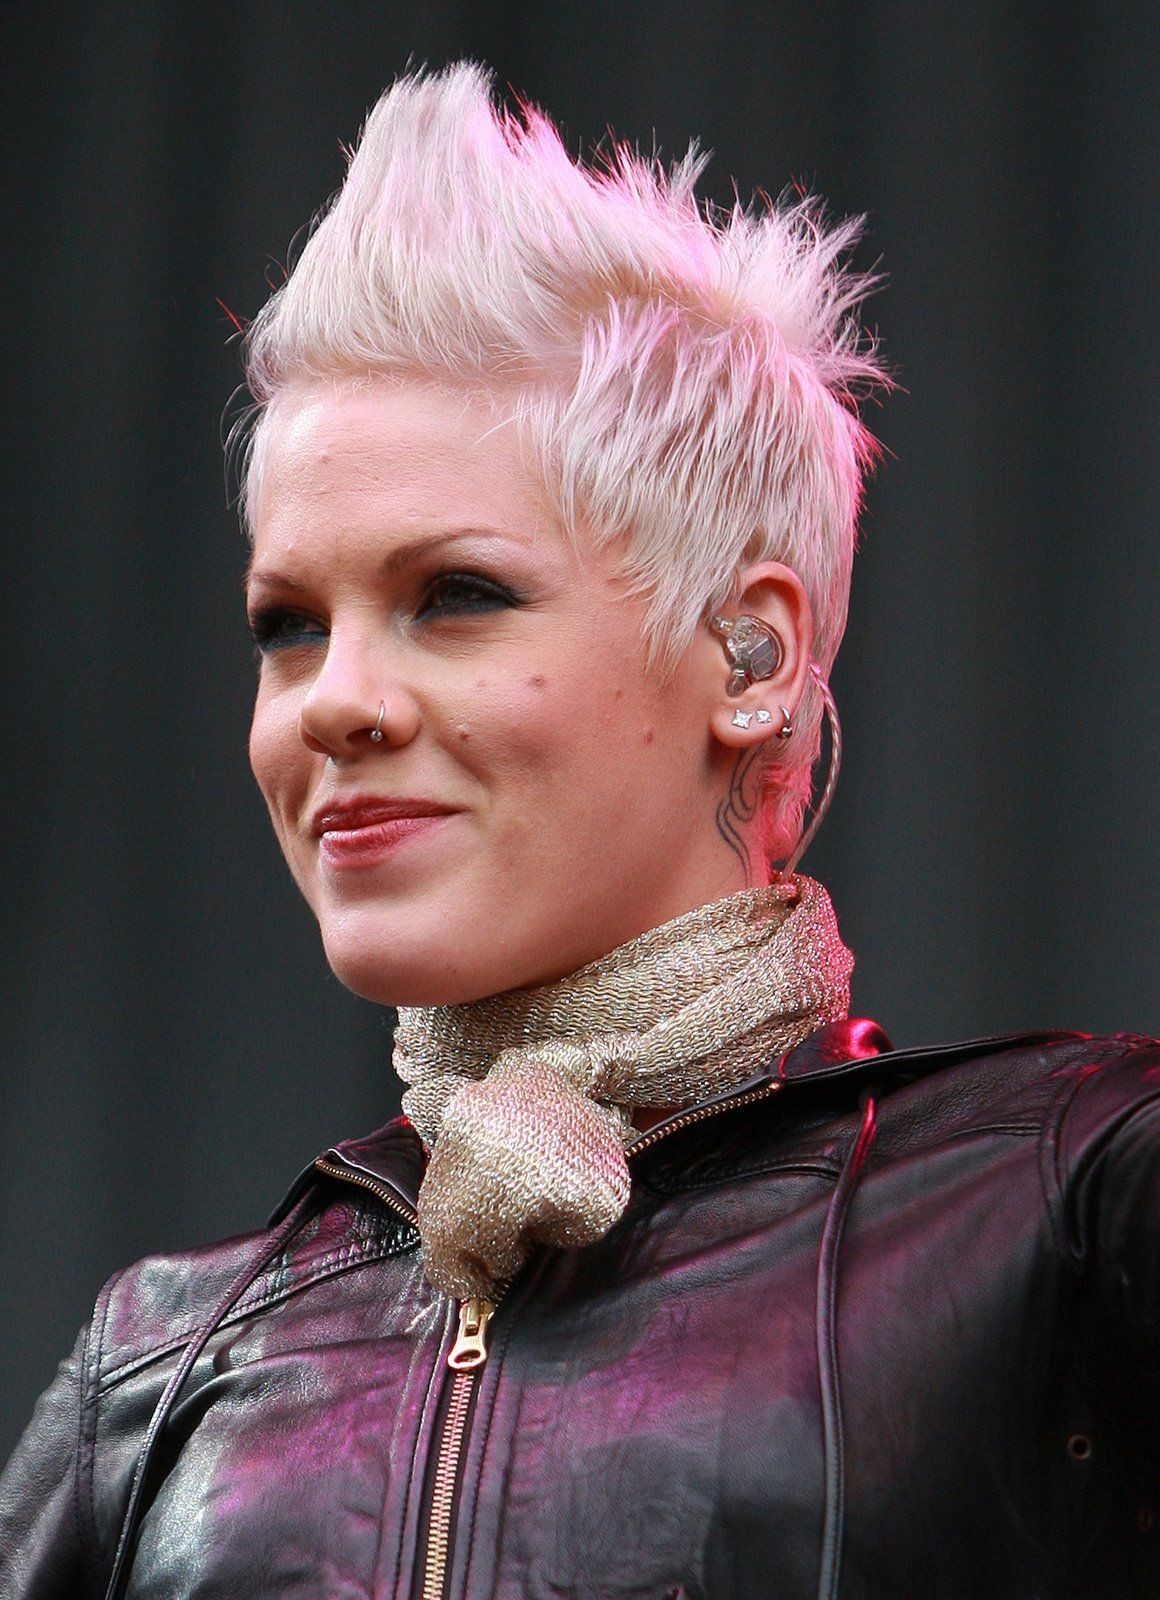 Best ideas about Punk Short Hairstyle . Save or Pin Short Punk Hairstyles for Women – CircleTrest Now.